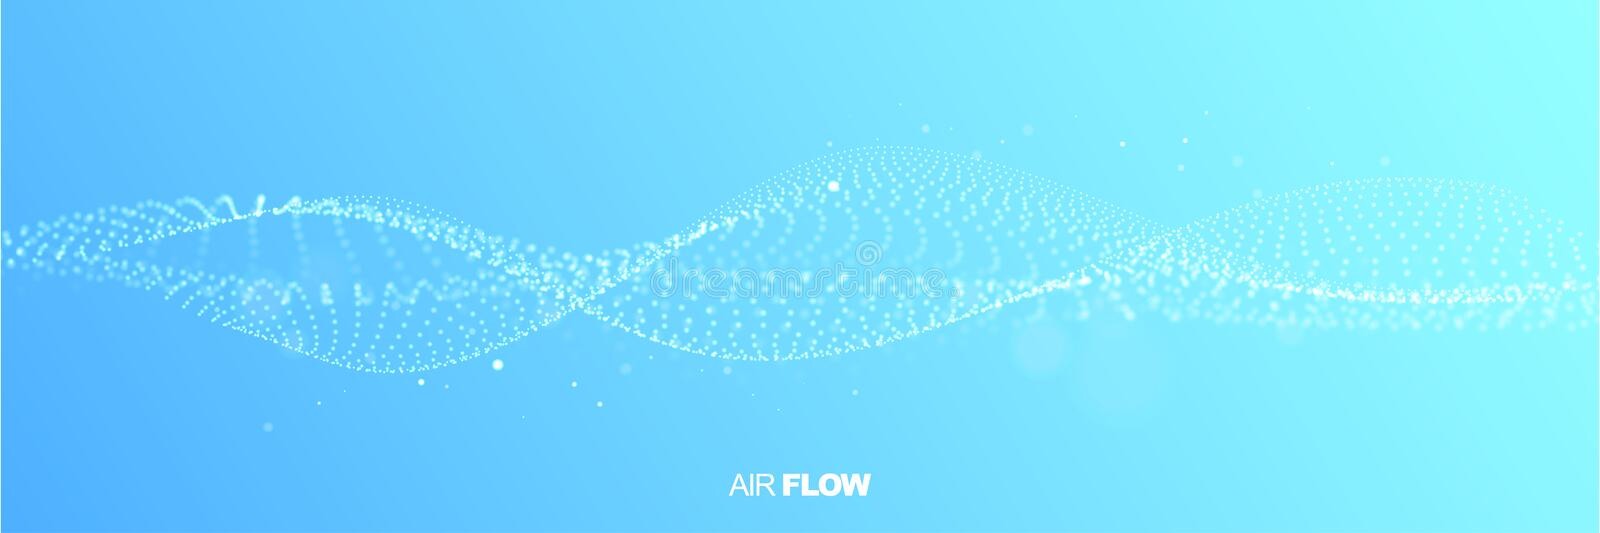 Air Flow Abstract Stock Illustrations – 9,769 Air Flow Abstract Stock  Illustrations, Vectors & Clipart - Dreamstime